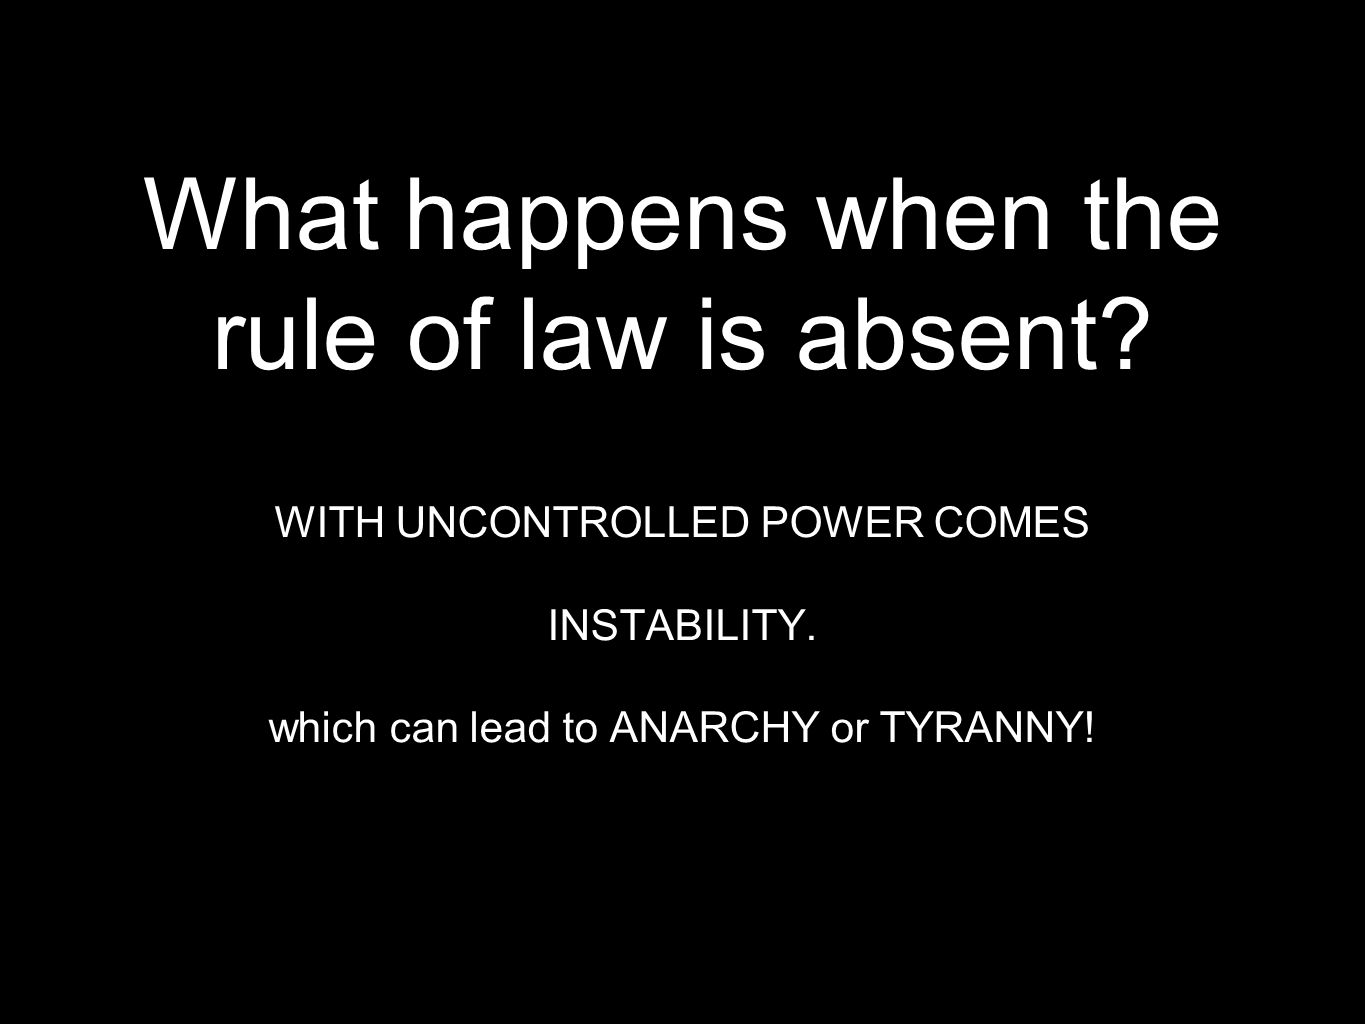 What happens when the rule of law is absent? WITH UNCONTROLLED POWER COMES INSTABILITY. which can lead to ANARCHY or TYRANNY!